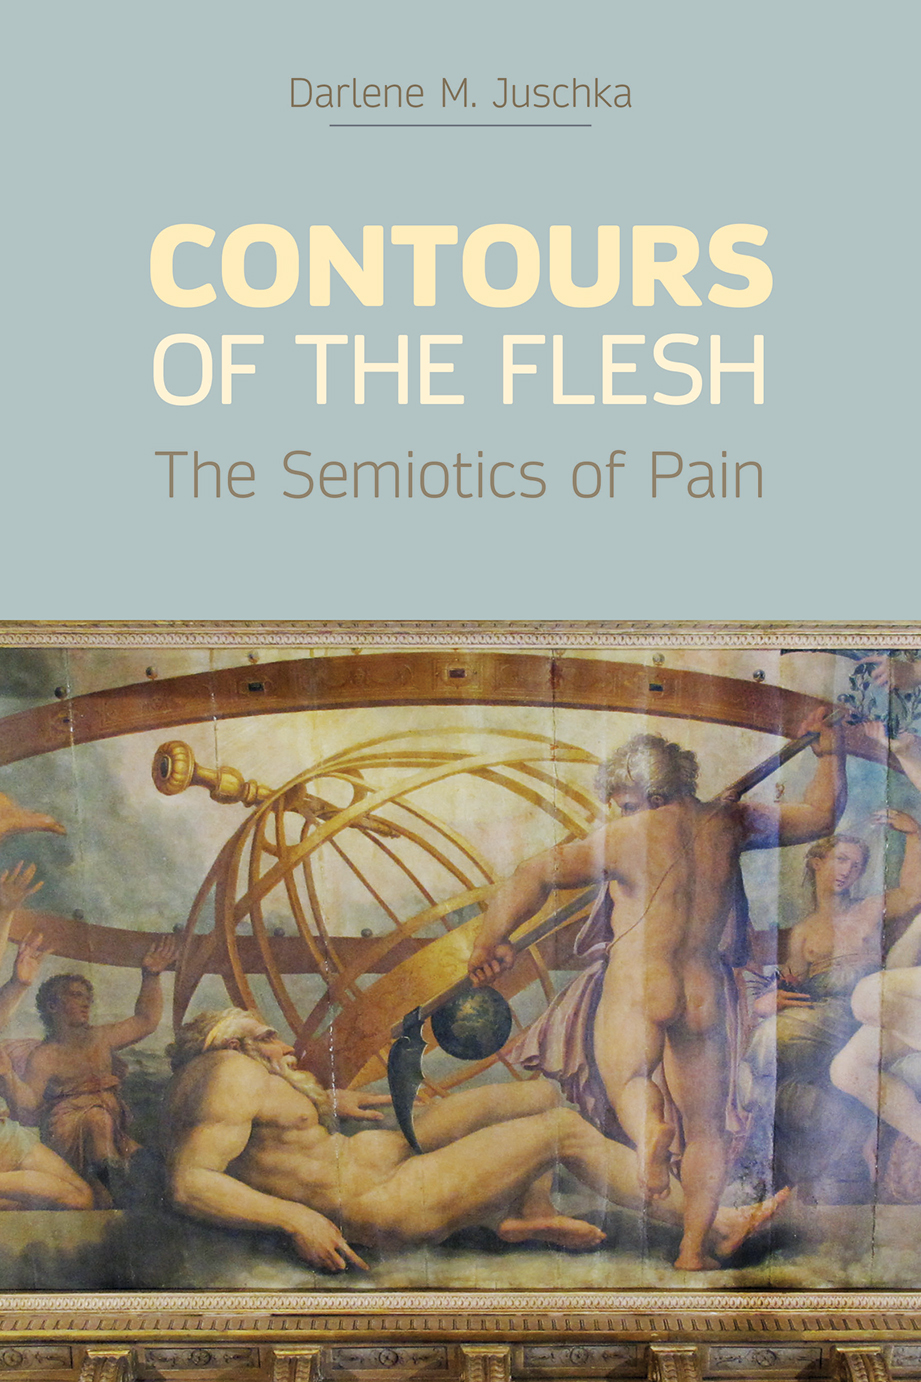 Contours of the Flesh